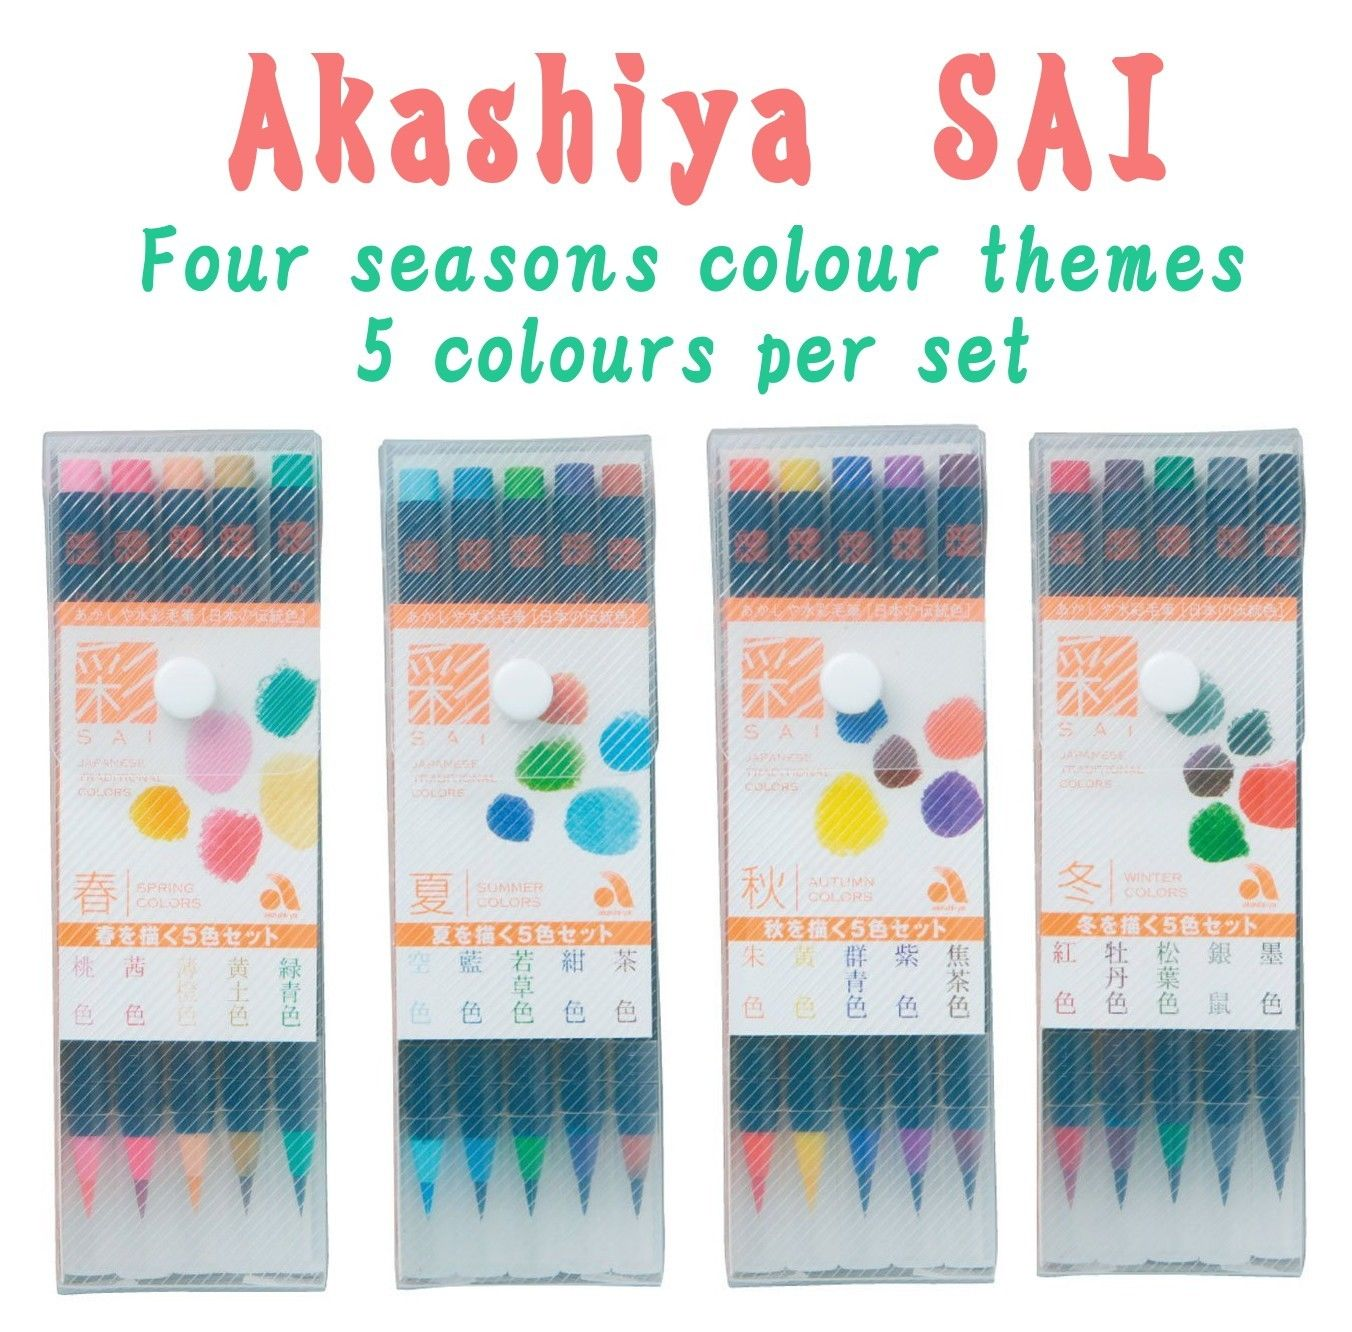 Fude pen Akashiya set 5 colori WINTER